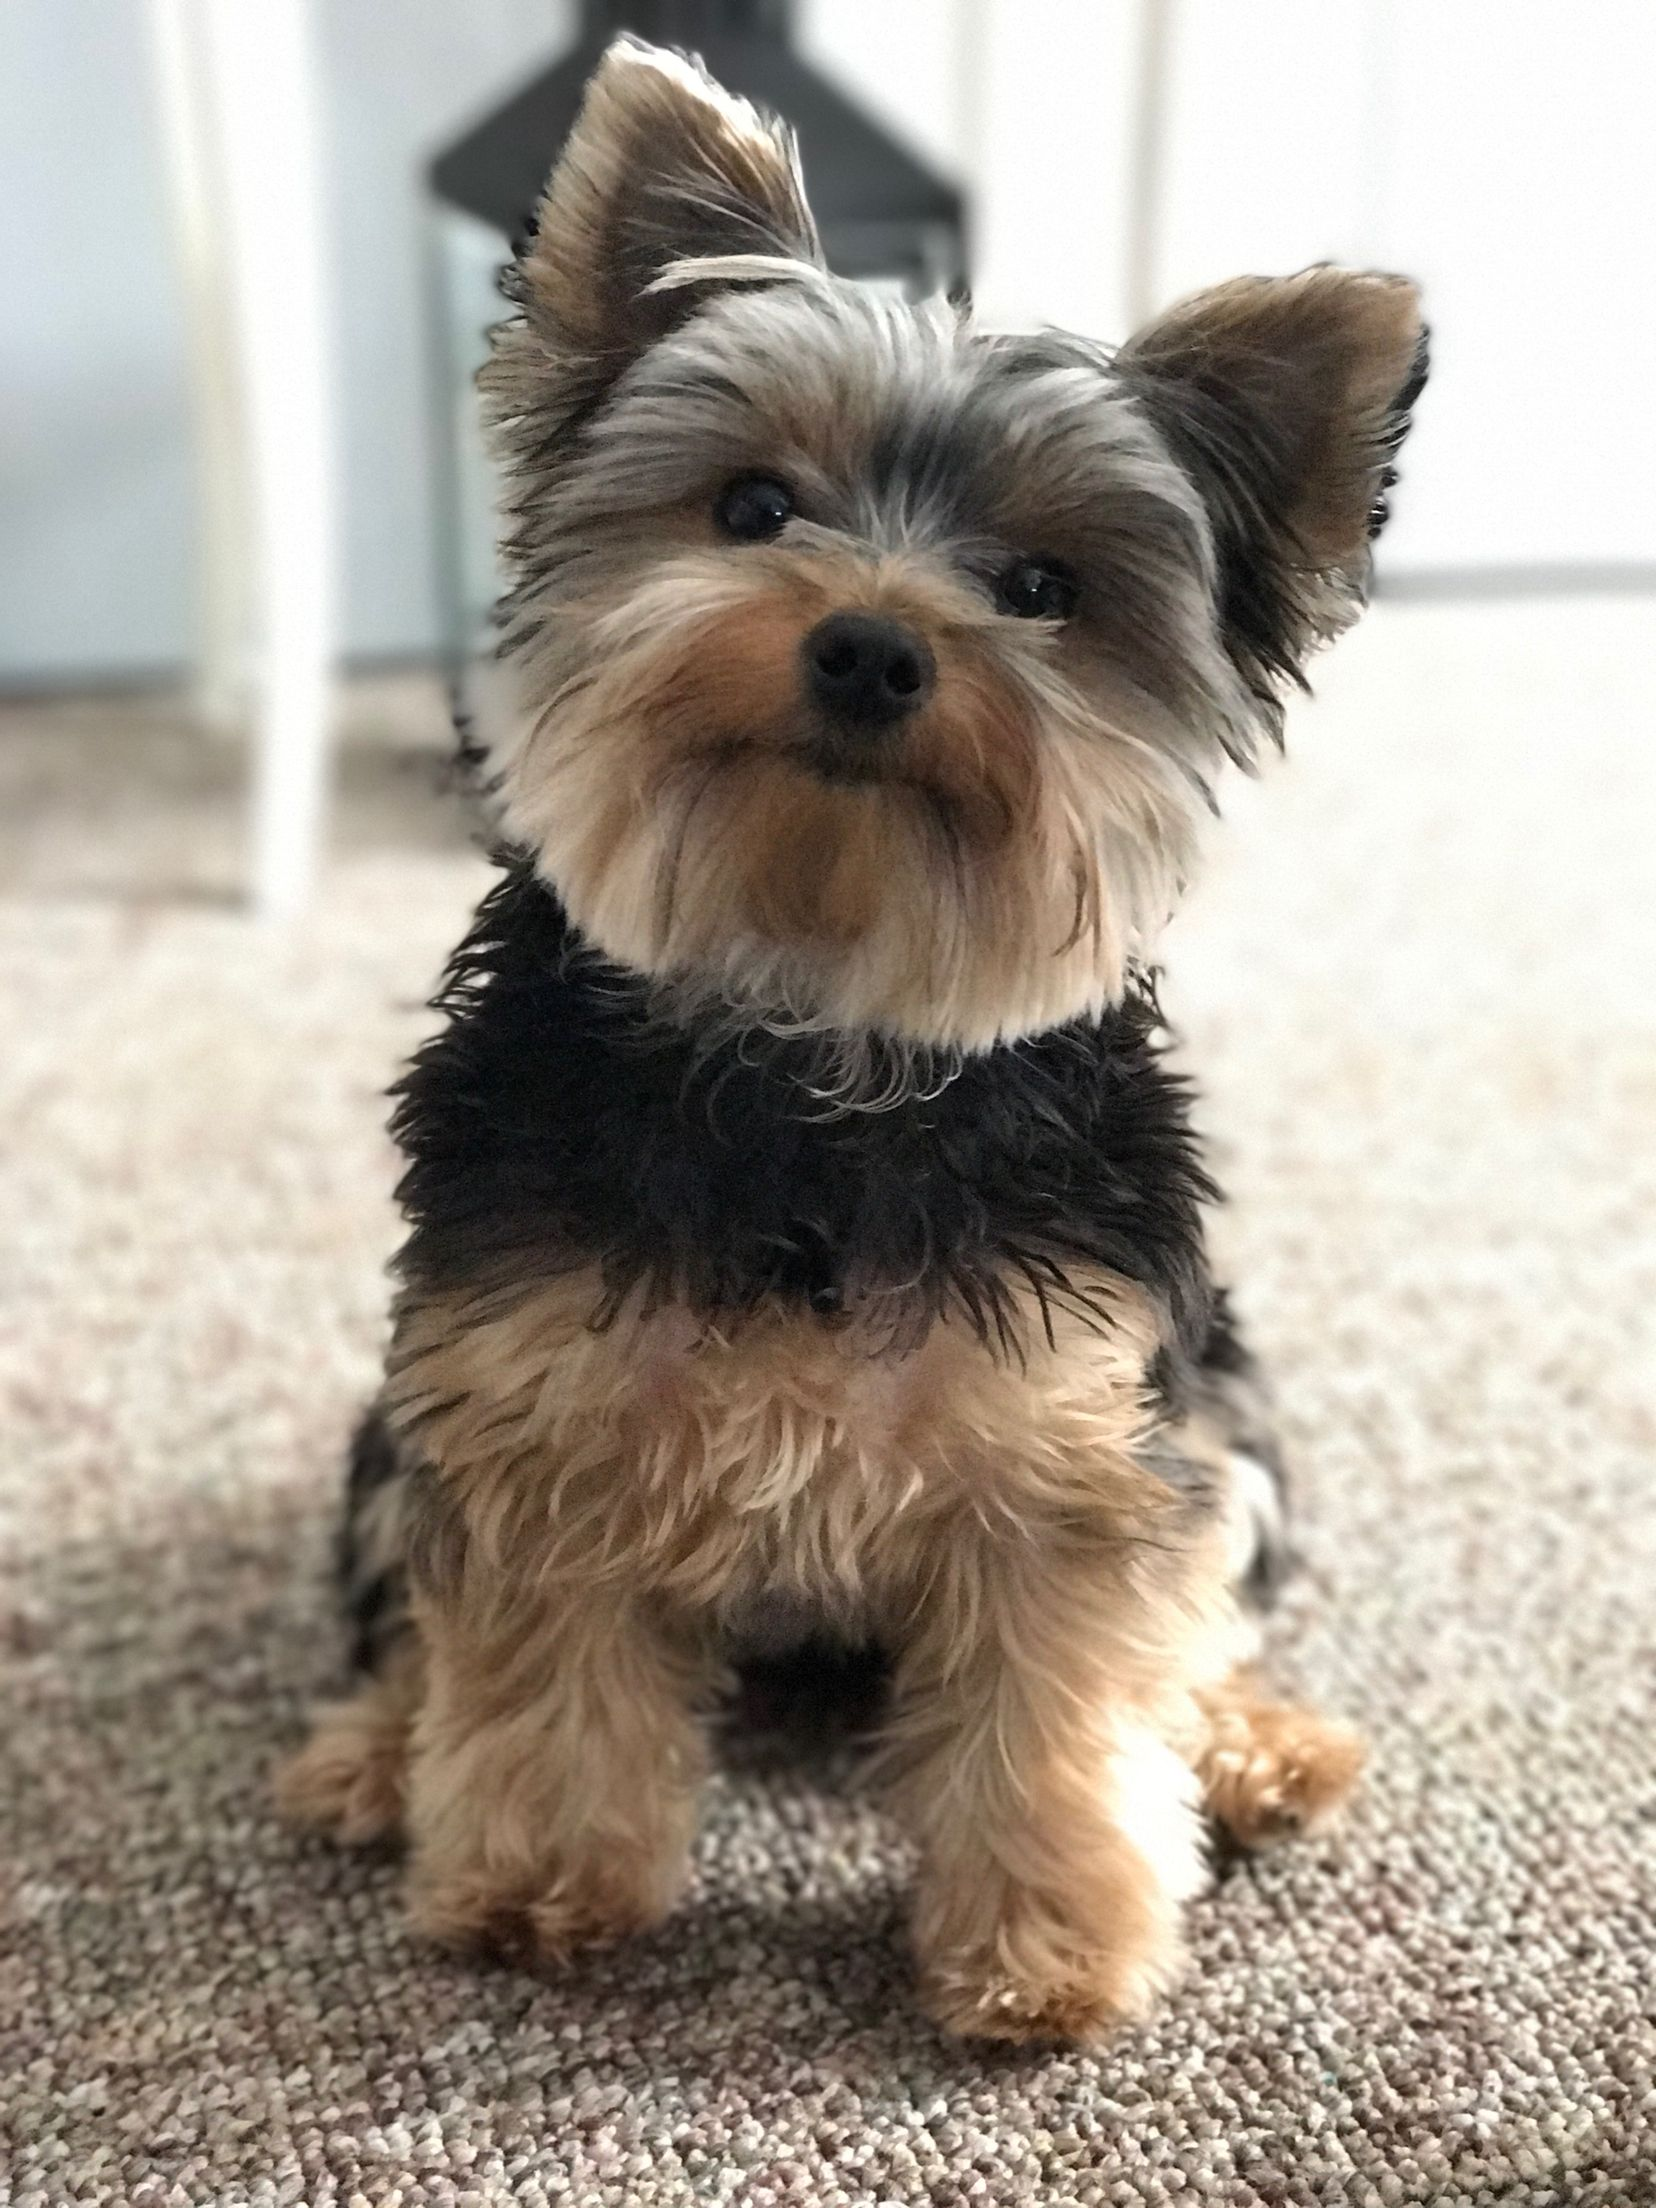 Pin By Gertrud Maletzky On Dogs Yorkie Terrier Yorkie Dogs Yorkie Puppy